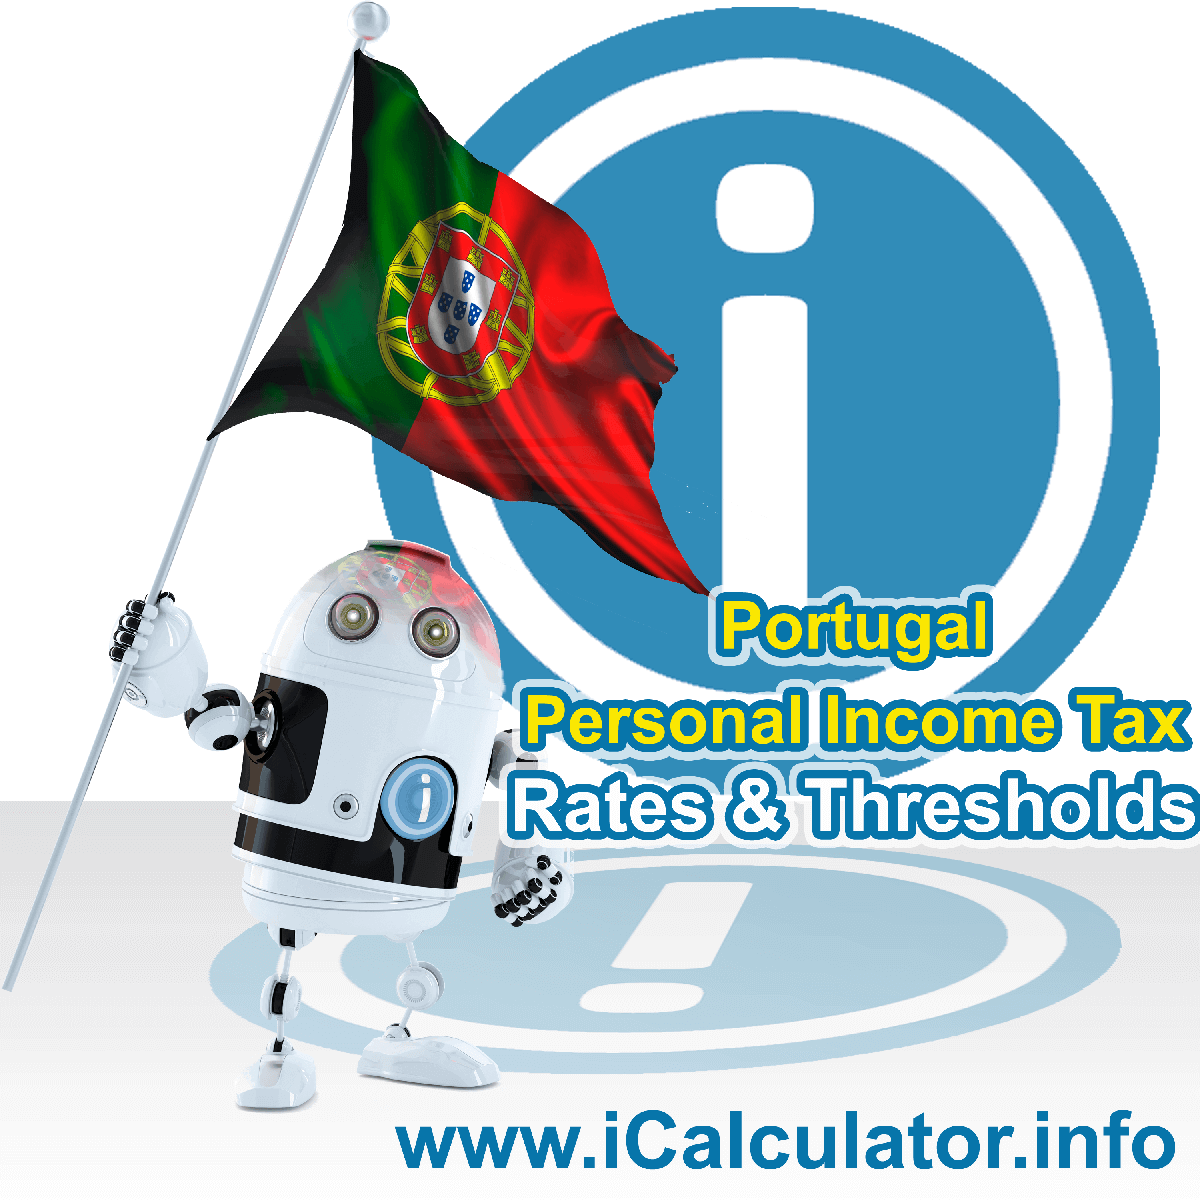 Portugal Personal Income Tax Tables and Corporation Tax Tables for 2020. This image shows the Portugal flag and information relating to the tax tables for Portugal in 2020 that are used within the Portugal Tax Calculator